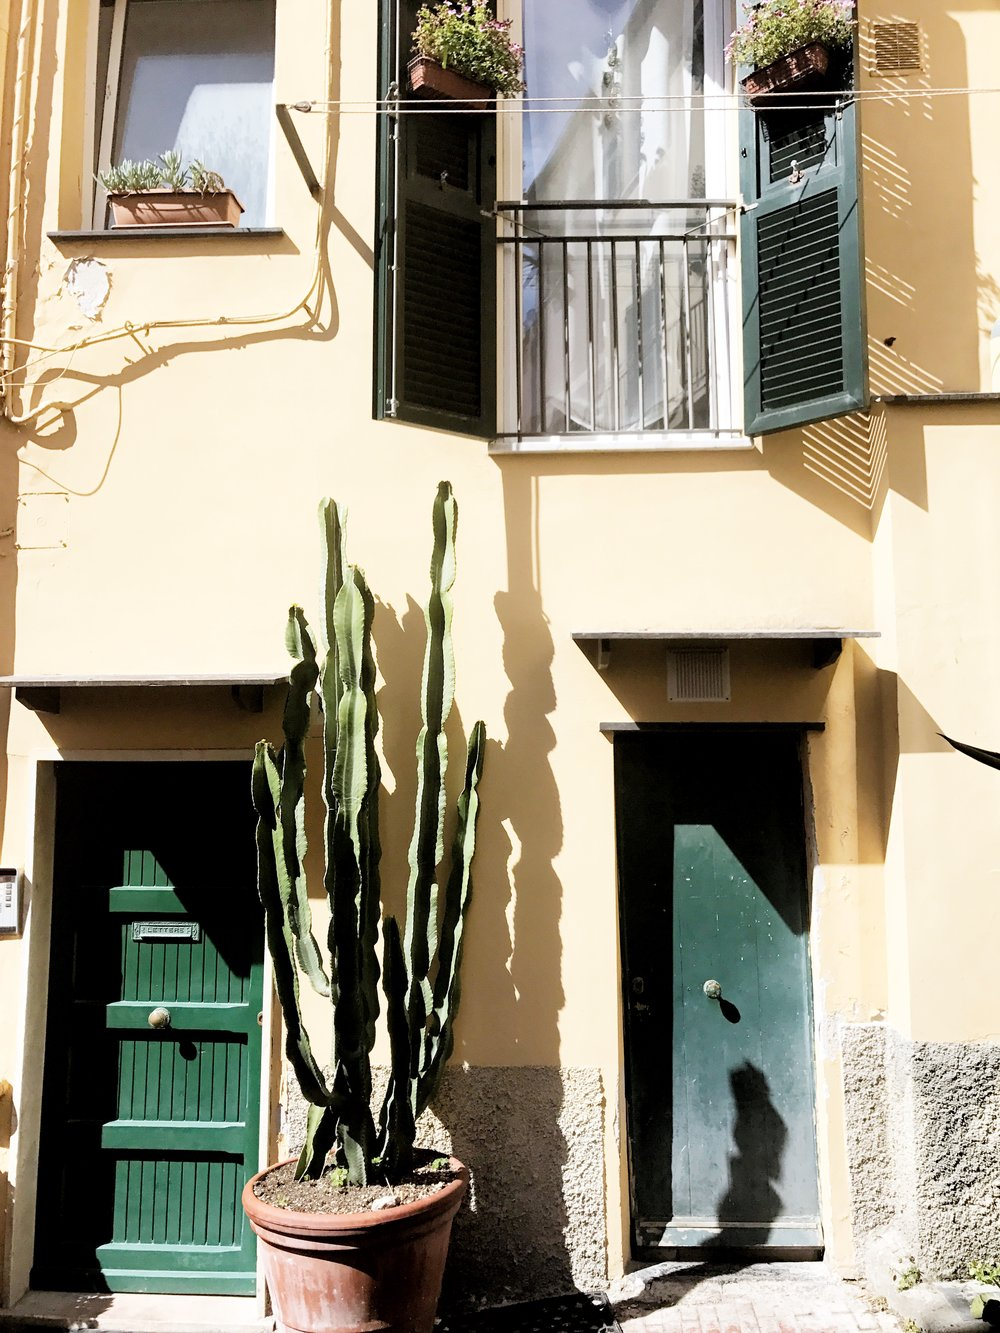 Cactus friends in Boccadasse, a neighborhood in Genova, Italy